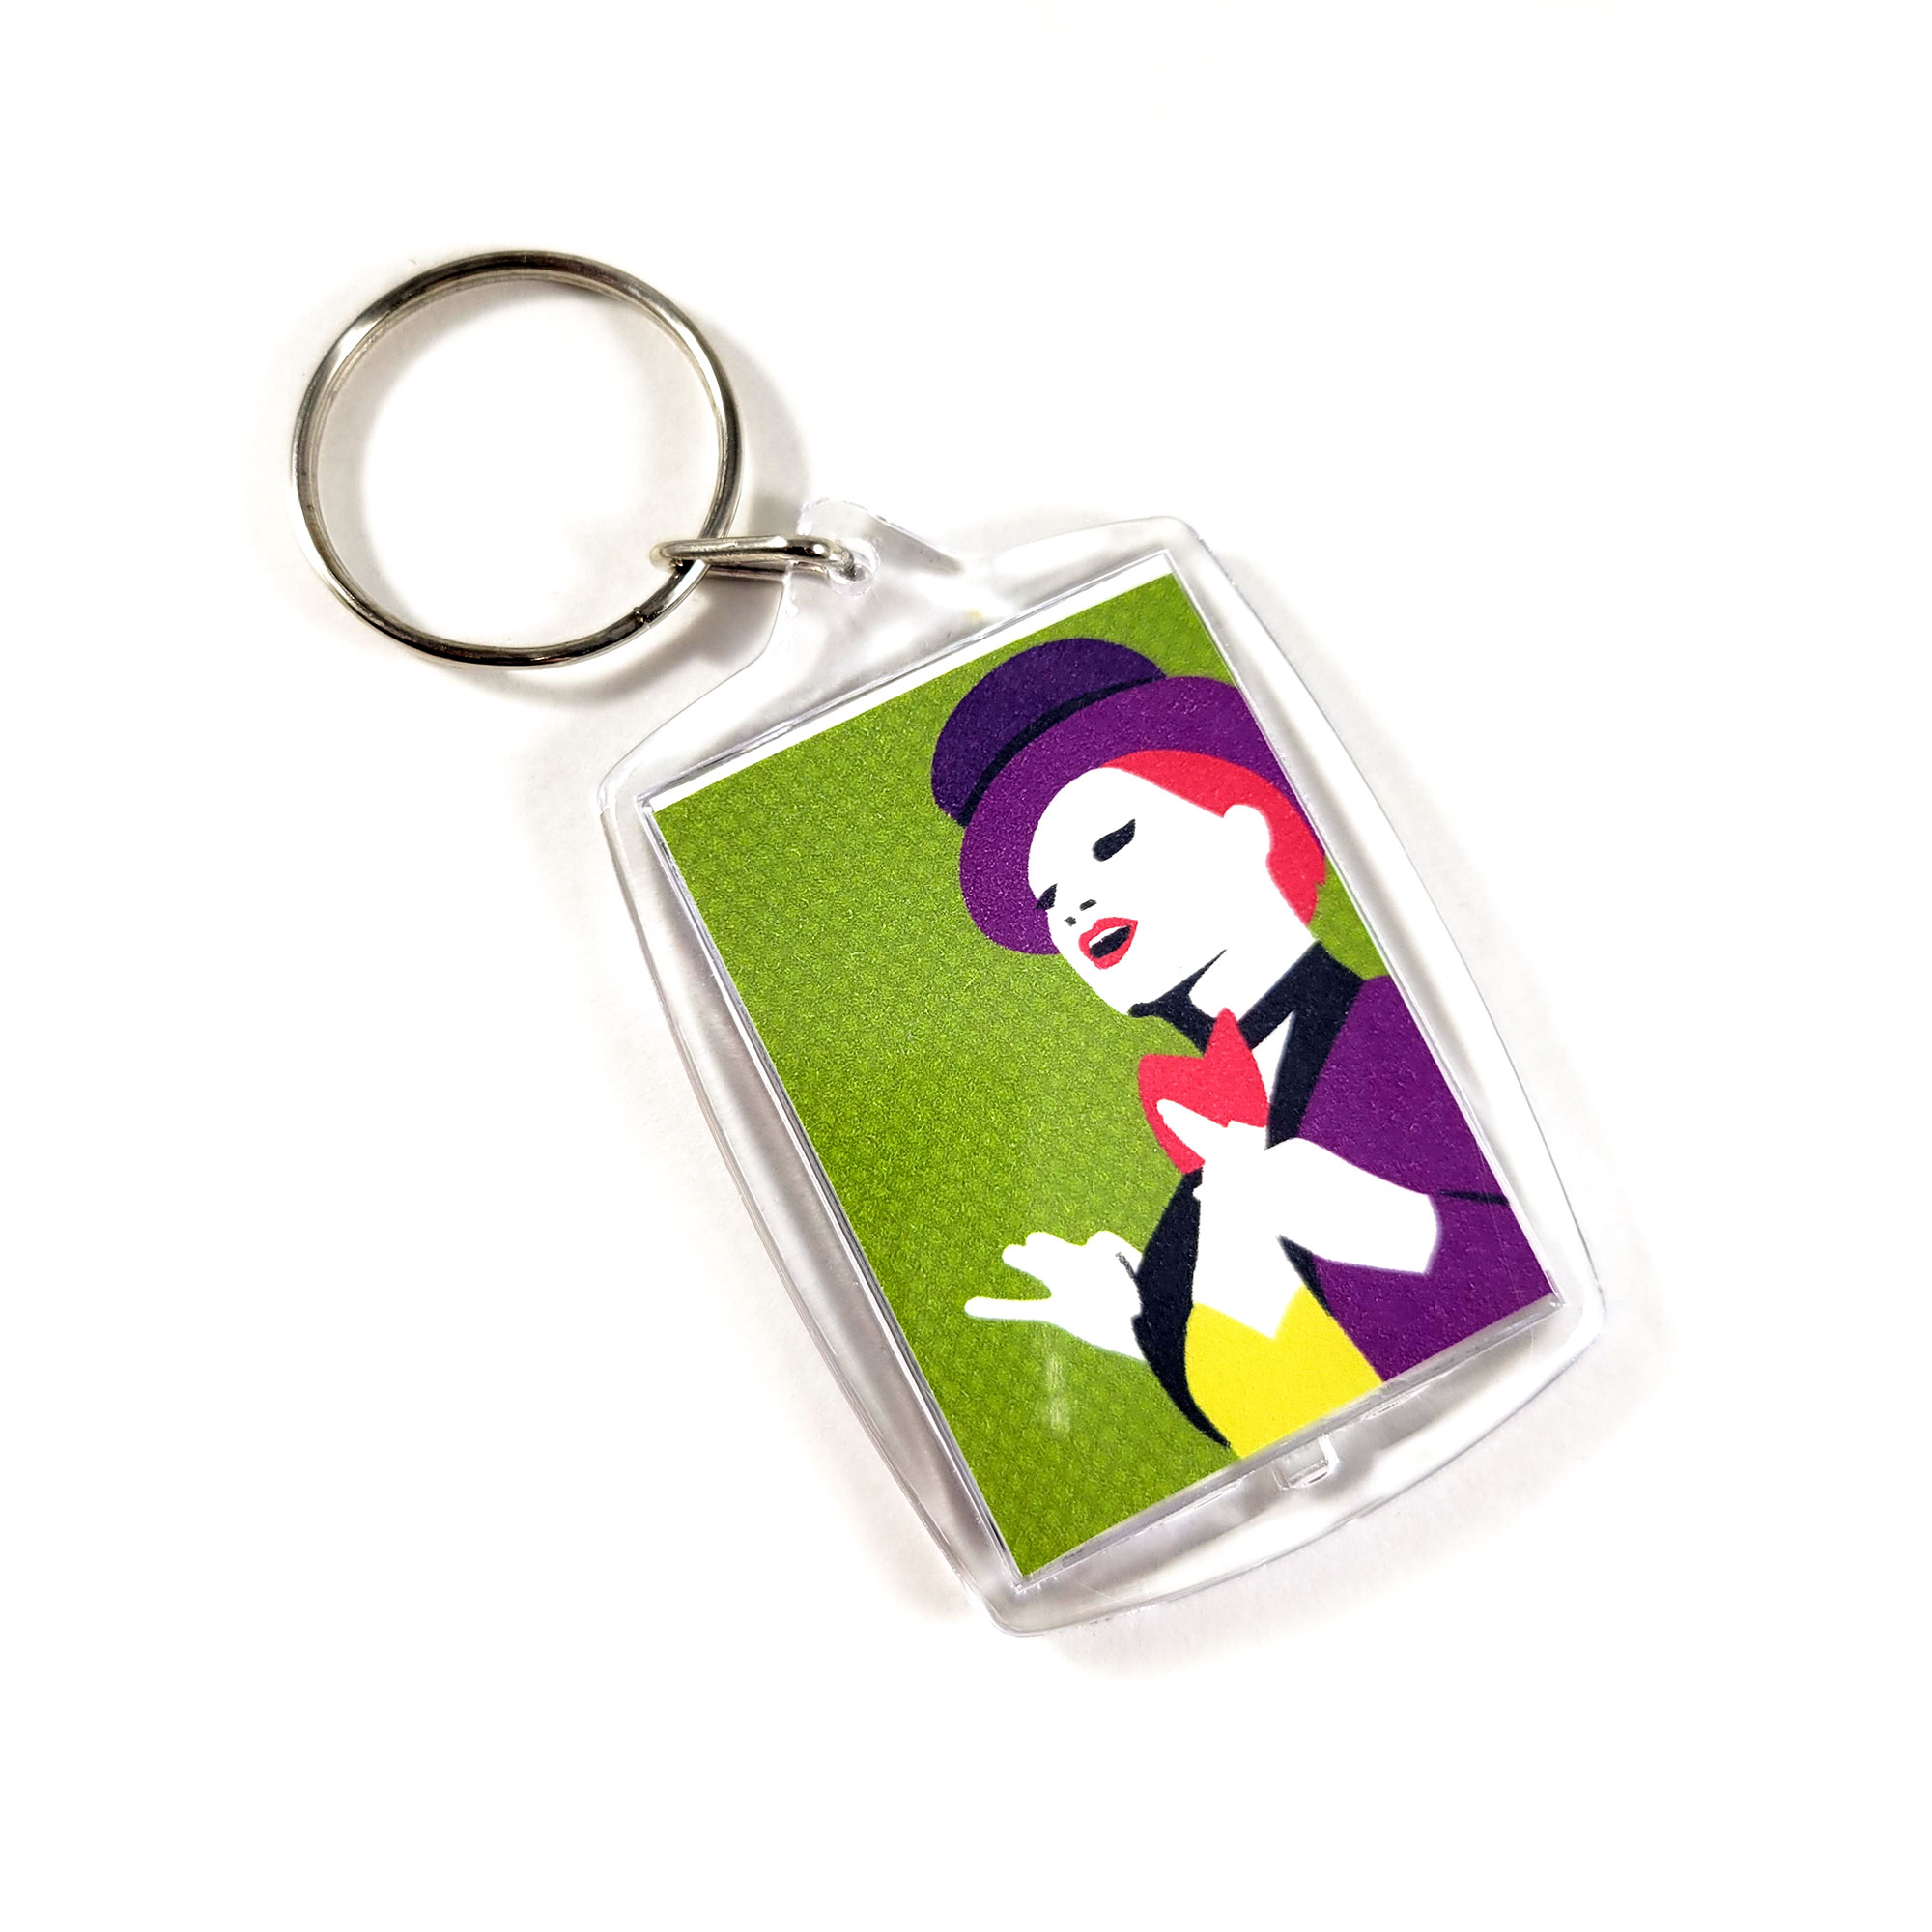 KC019COL_ColumbiaDoubleSidedKeychain_ByWildeDesigns_02